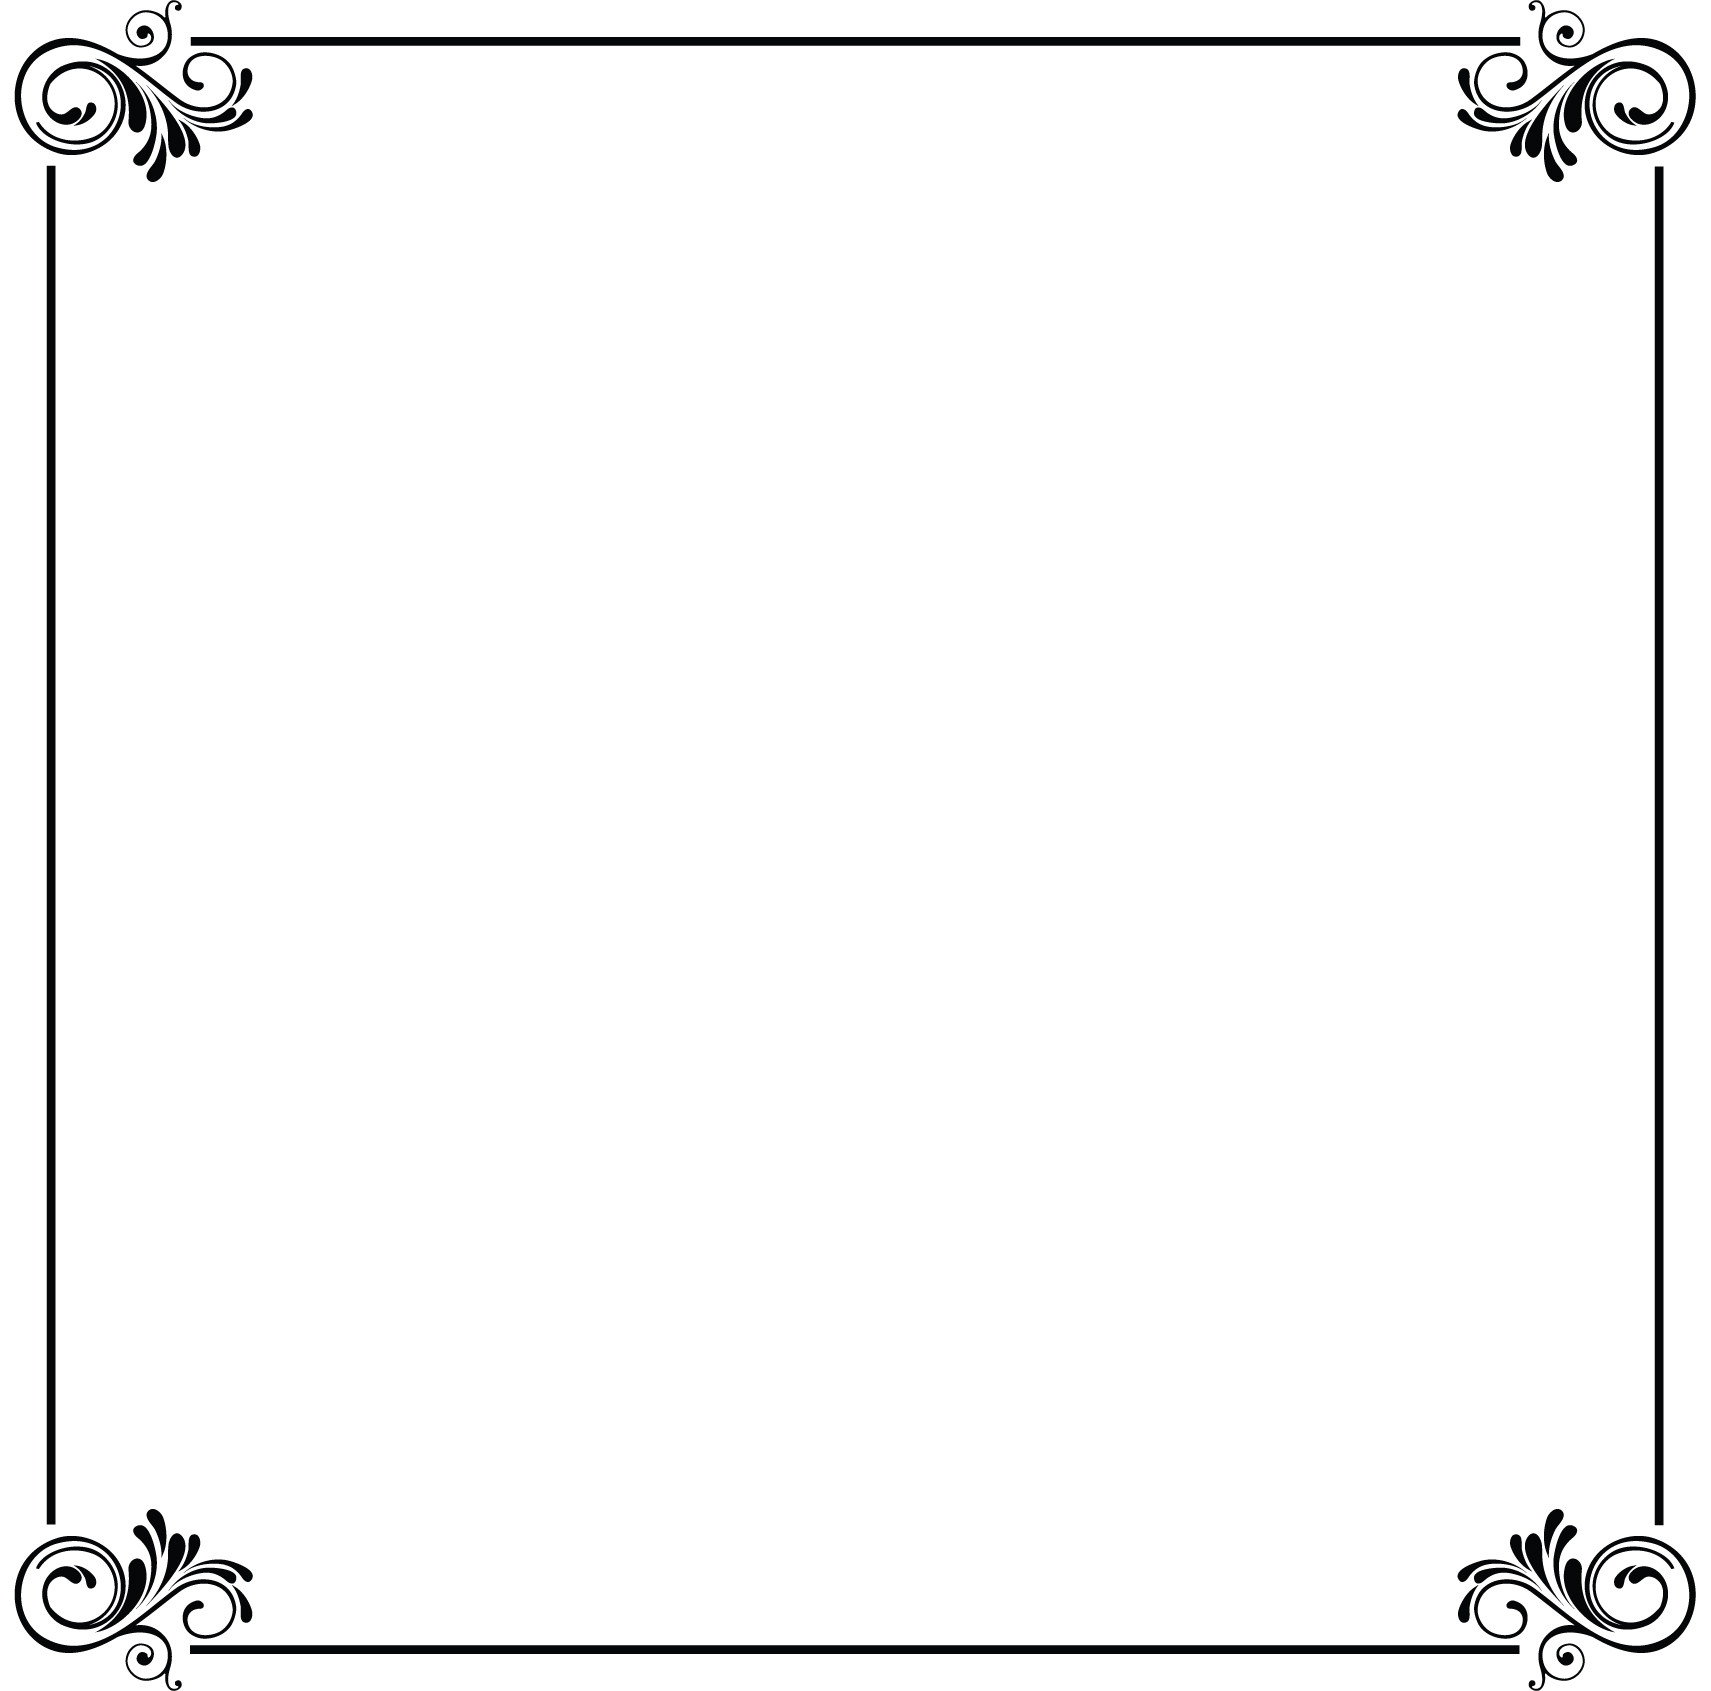 Wedding Card Border Free Cliparts That You Can Download To You